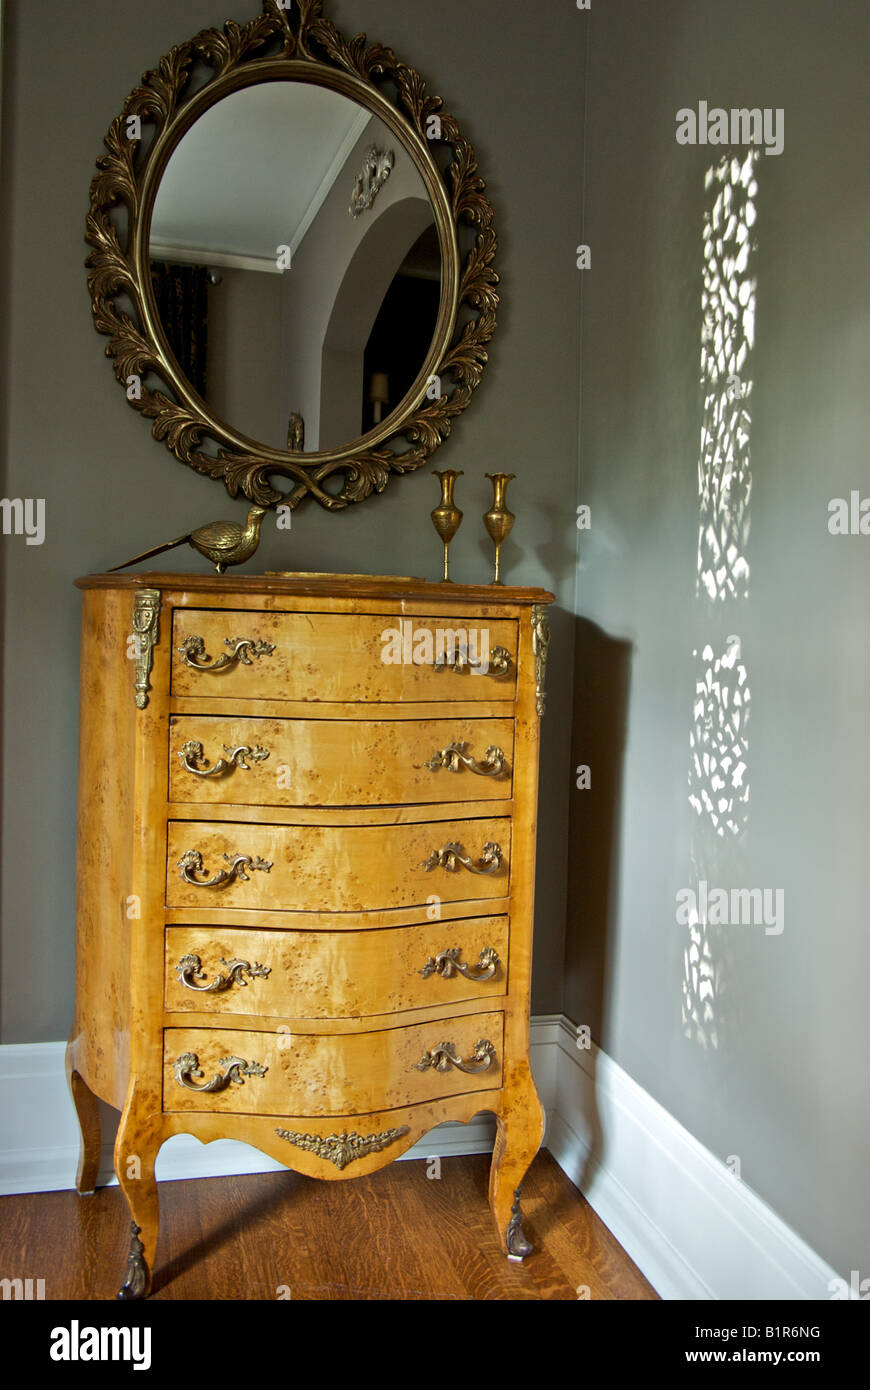 Antique Chest Of Wooden Oak Drawers Ornate Framed Mirror Stock Photo